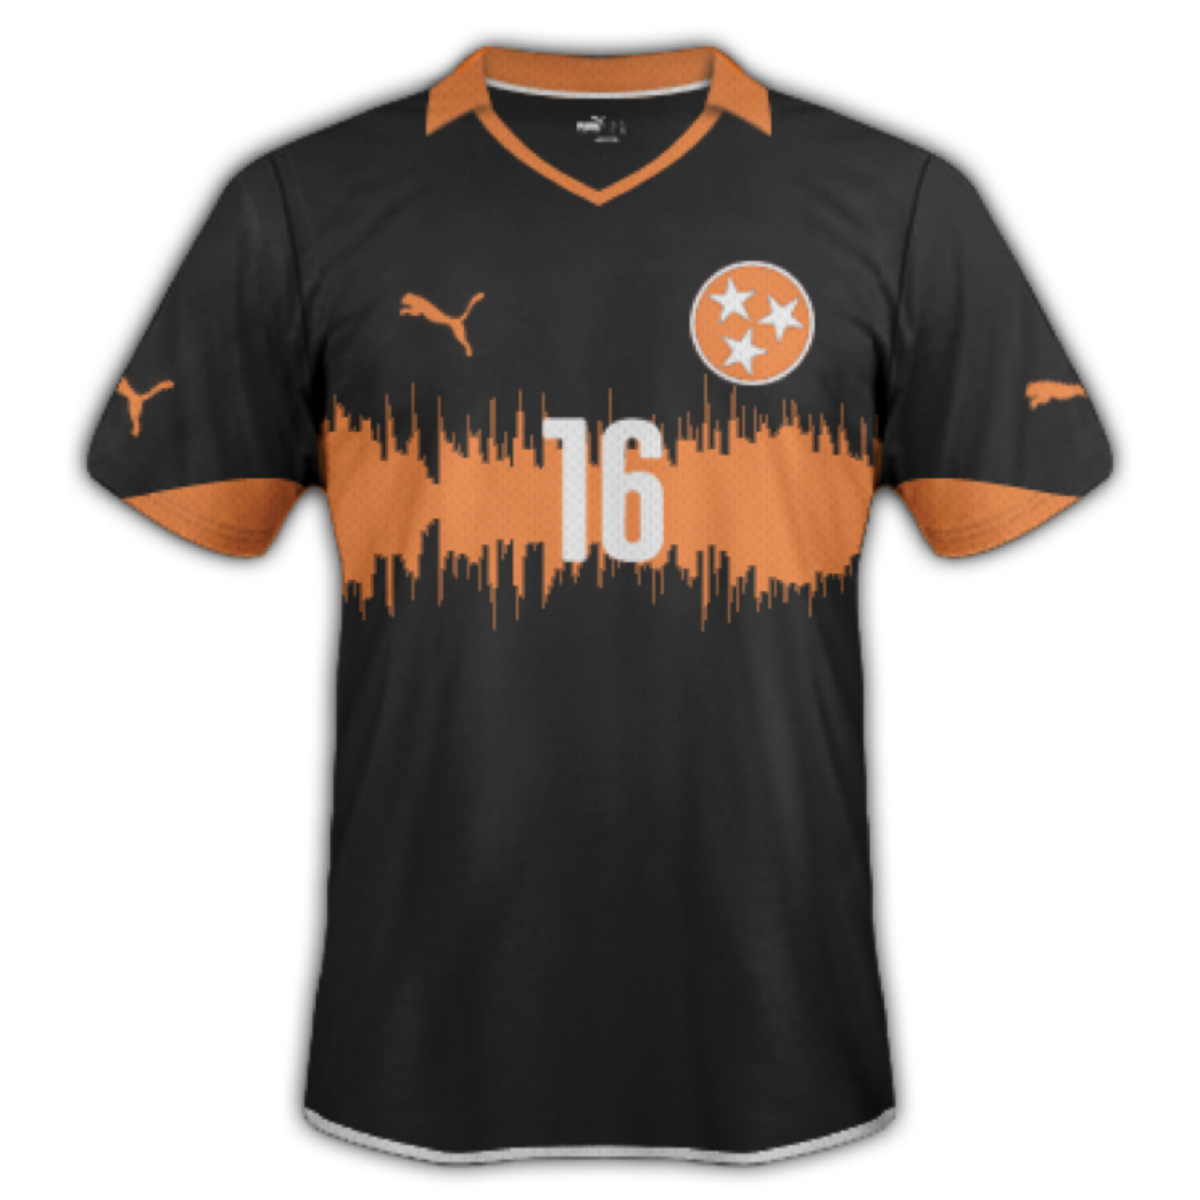 087 - Tennessee Away